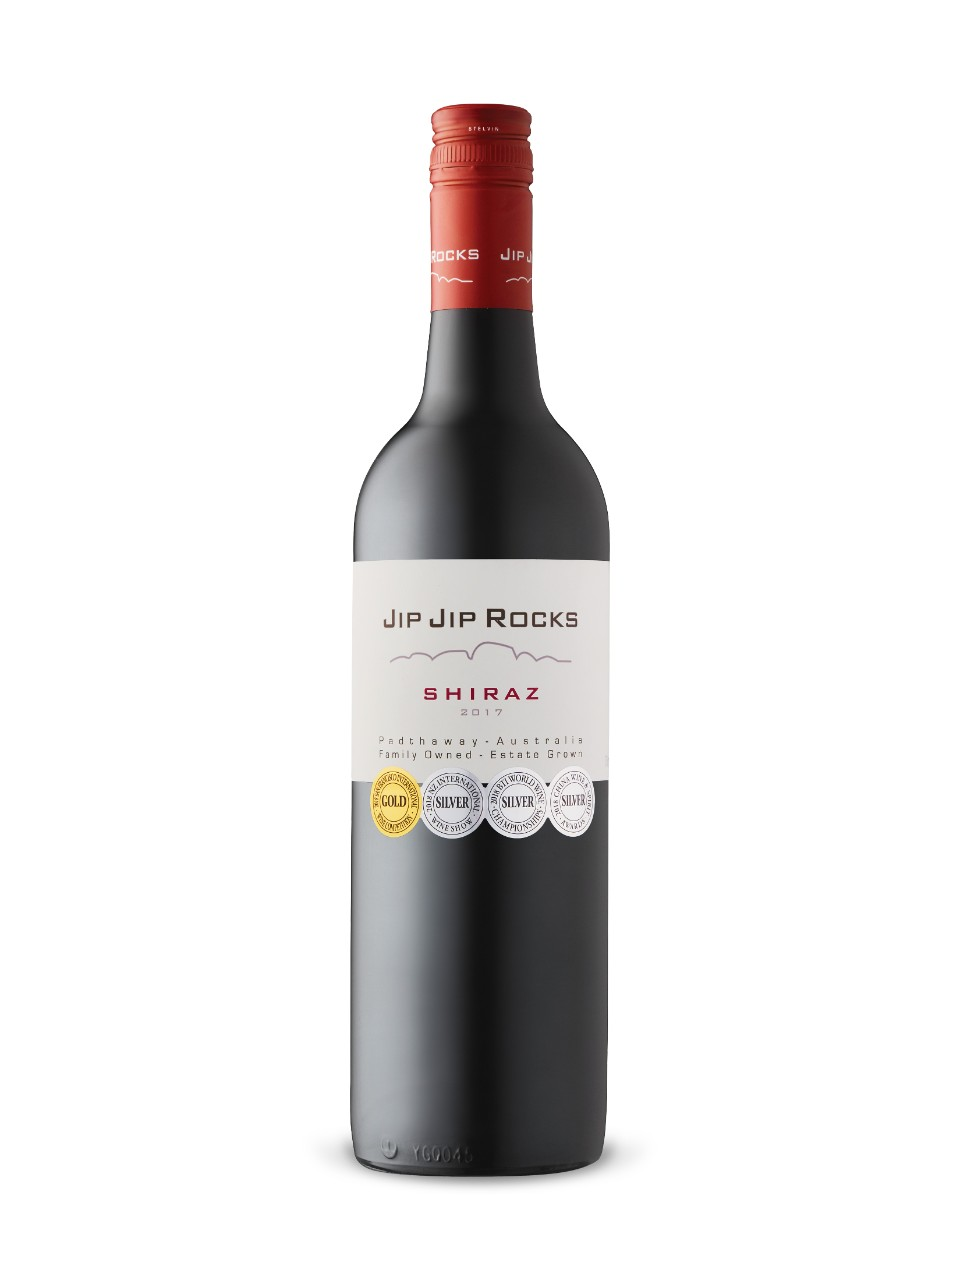 Jip Jip Rocks Shiraz 2017